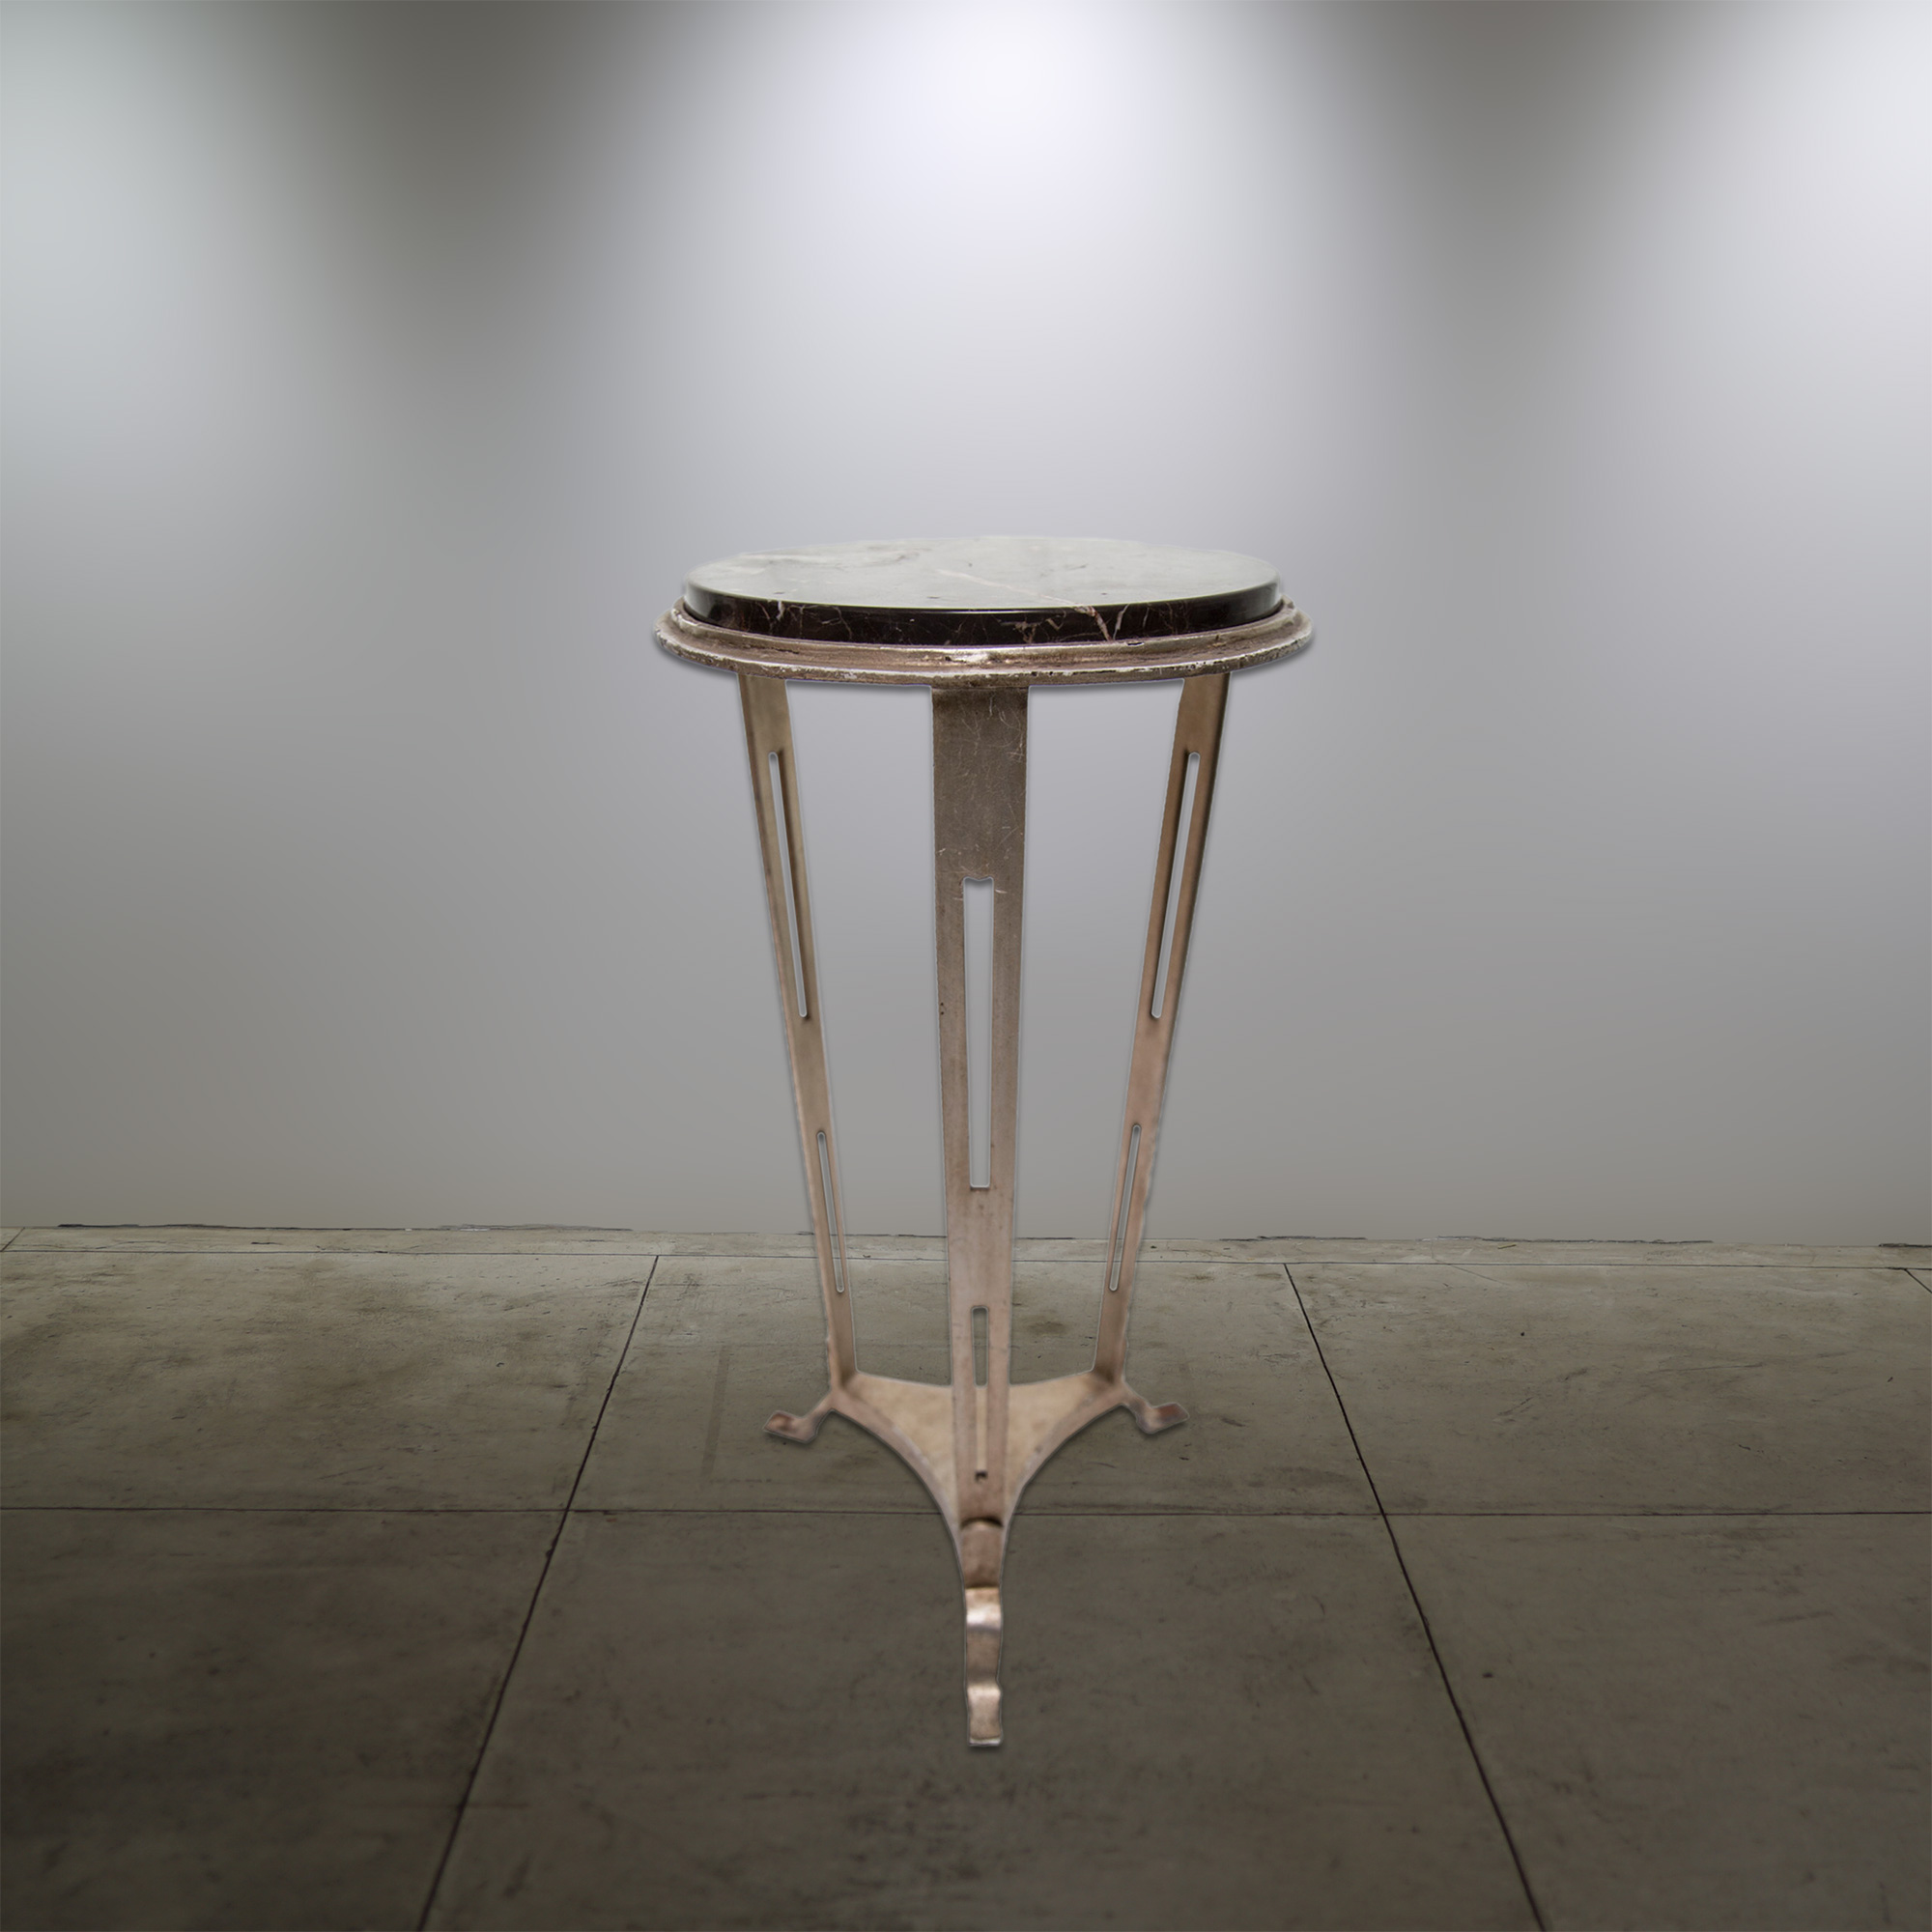 Silver Leaf Table - © Flavio Bisciotti